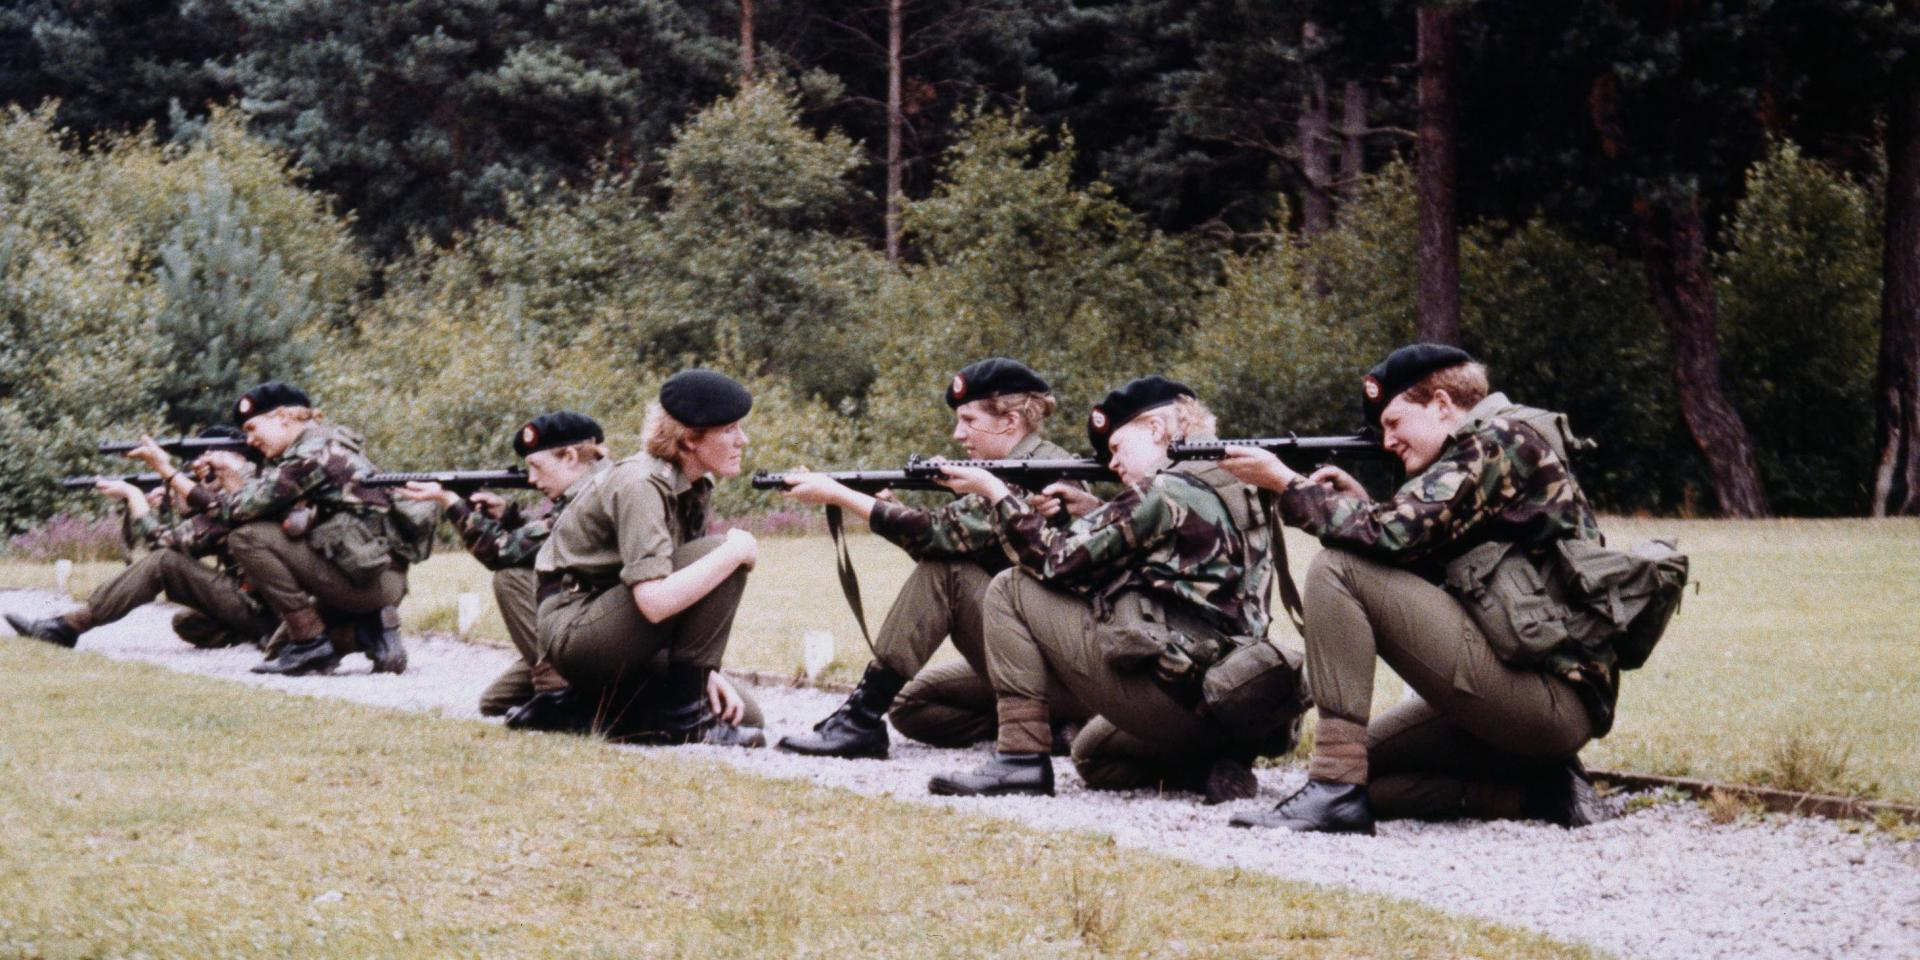 WRAC arms training at Guilford